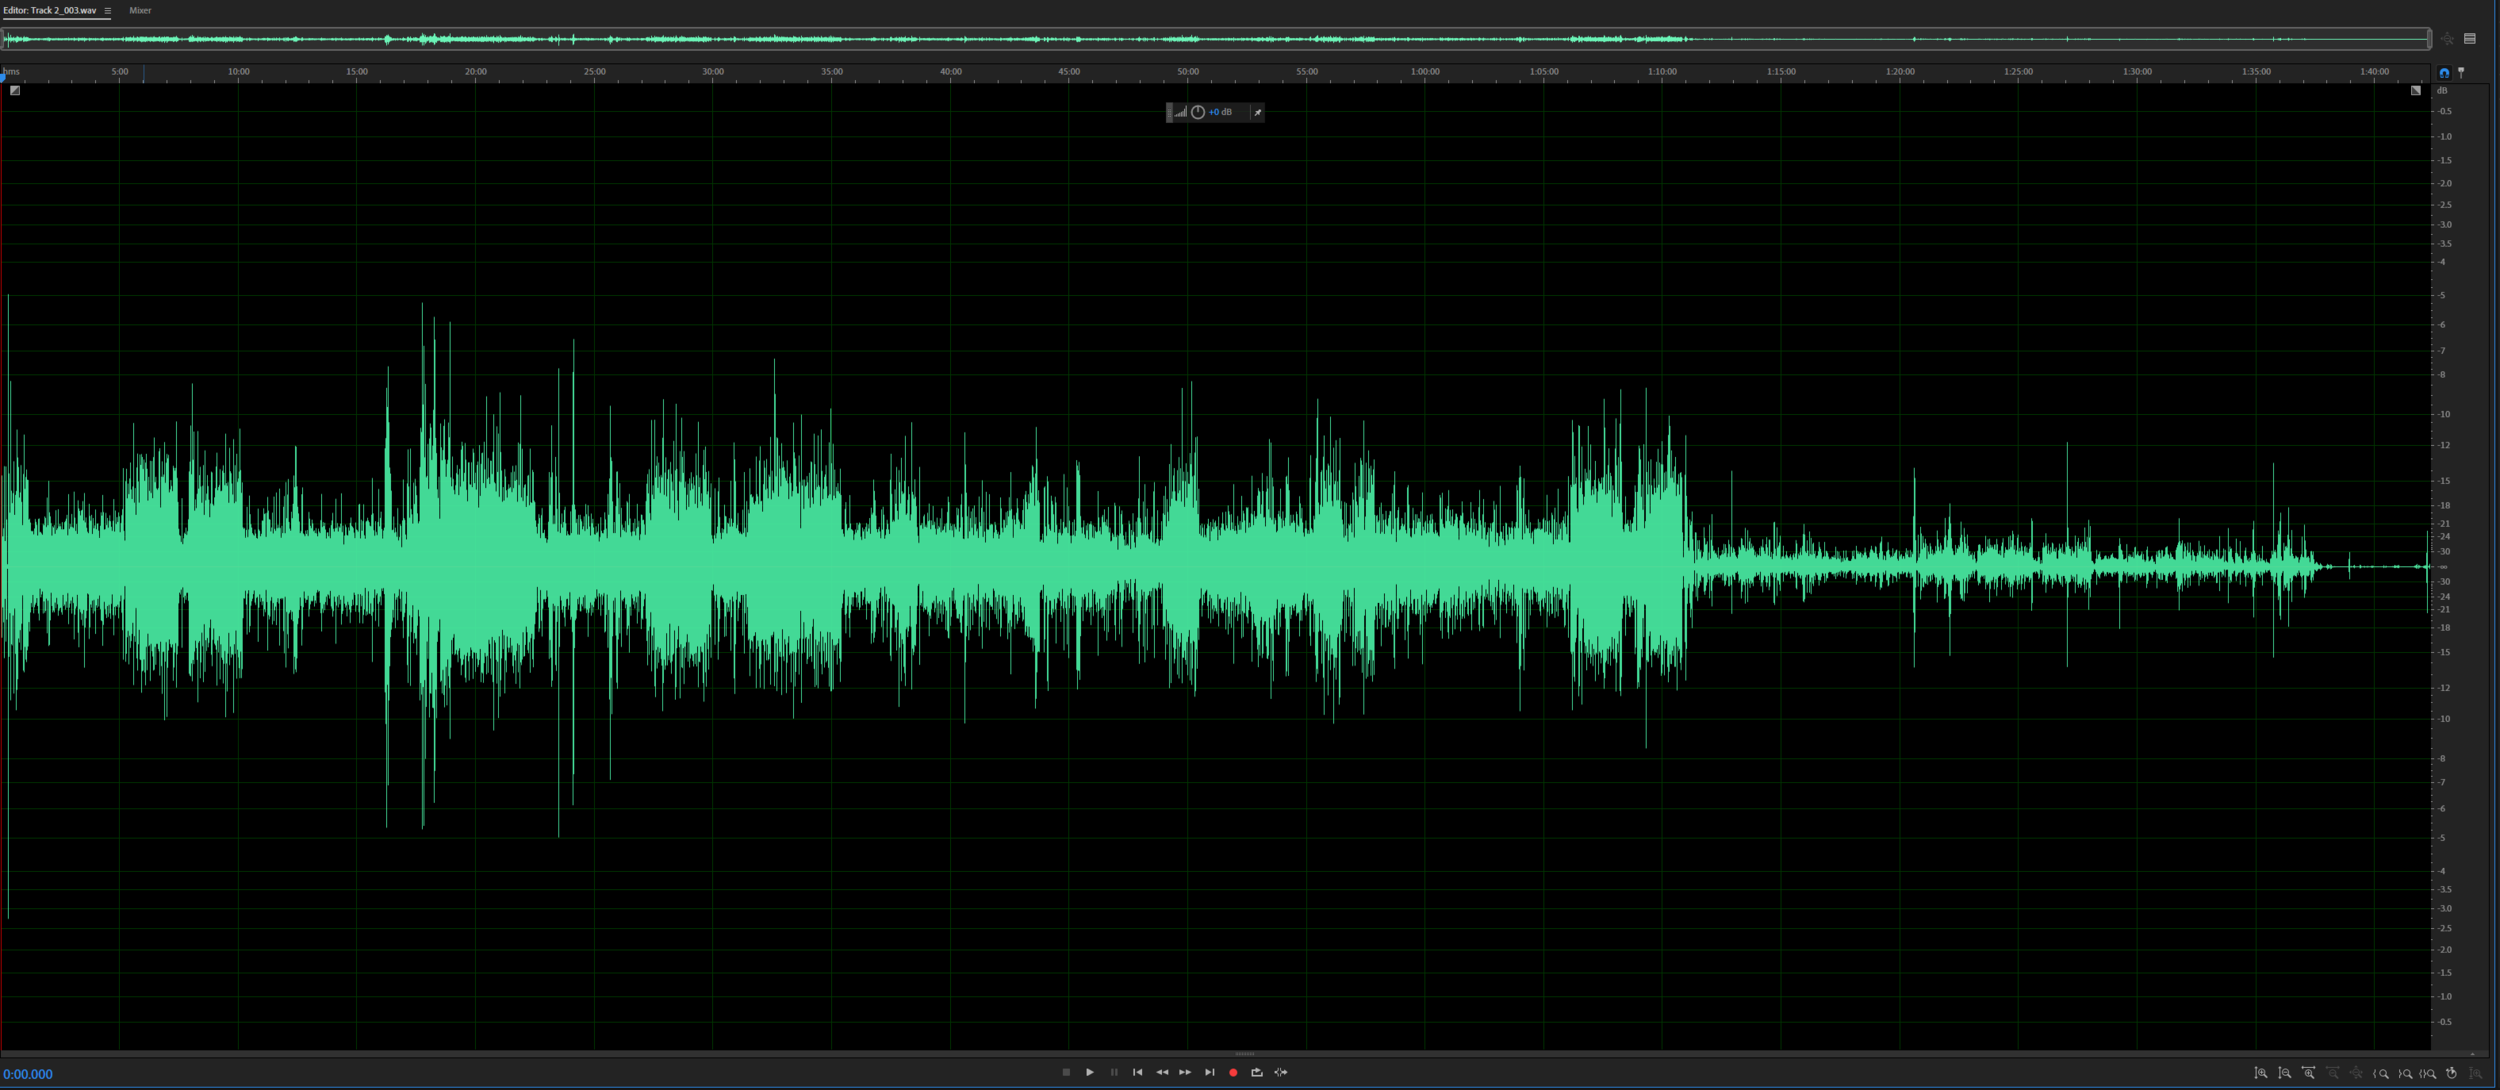 Audio waves from a Podcast we recorded